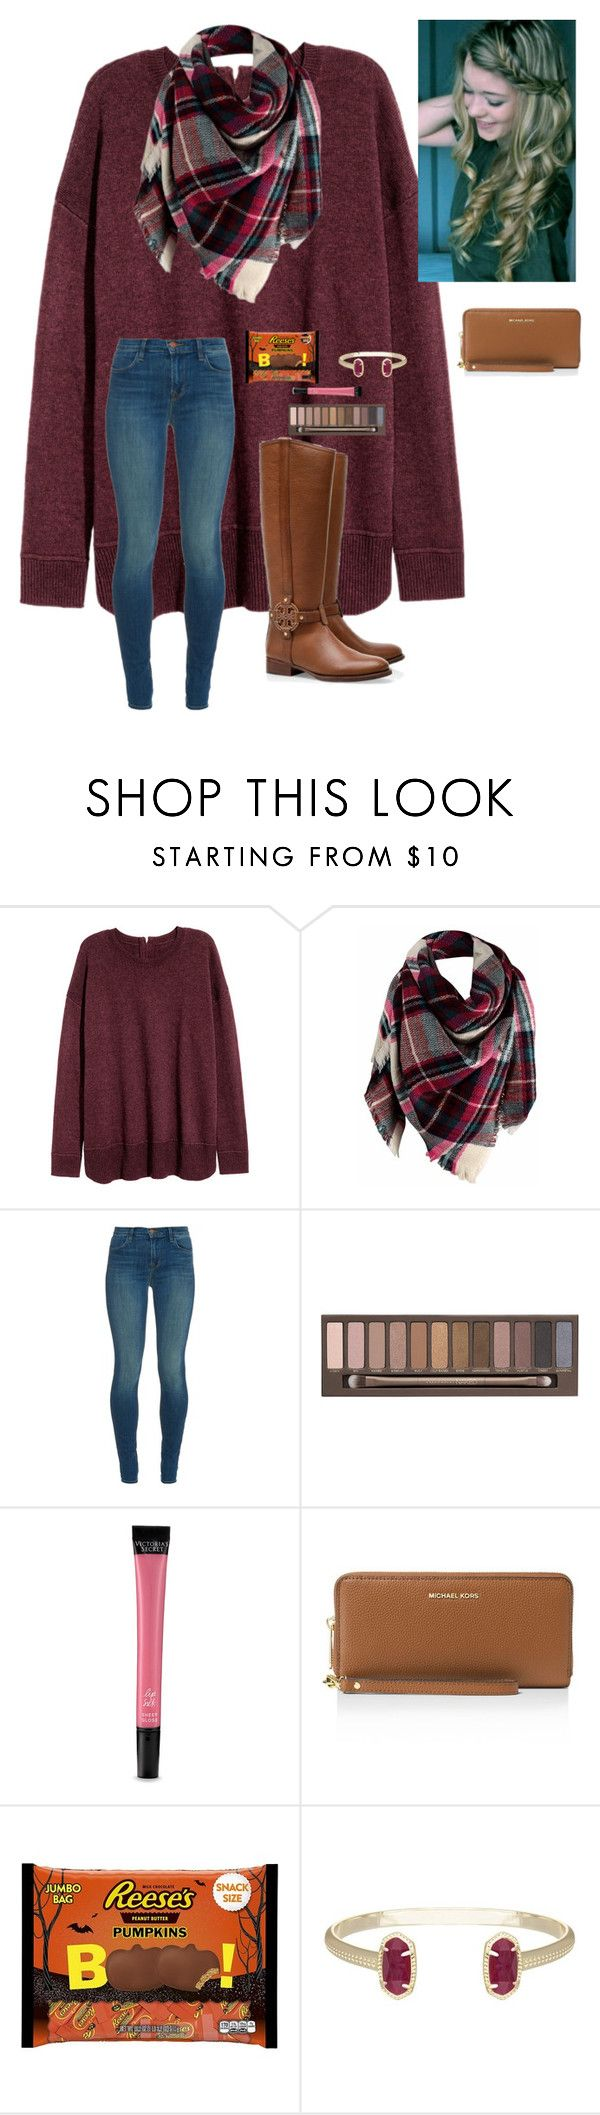 """Rtd"" by a-devo ❤ liked on Polyvore featuring J Brand, Tory Burch, Urban Decay, Victoria's Secret, MICHAEL Michael Kors, Kendra Scott and adevodisneytrip"